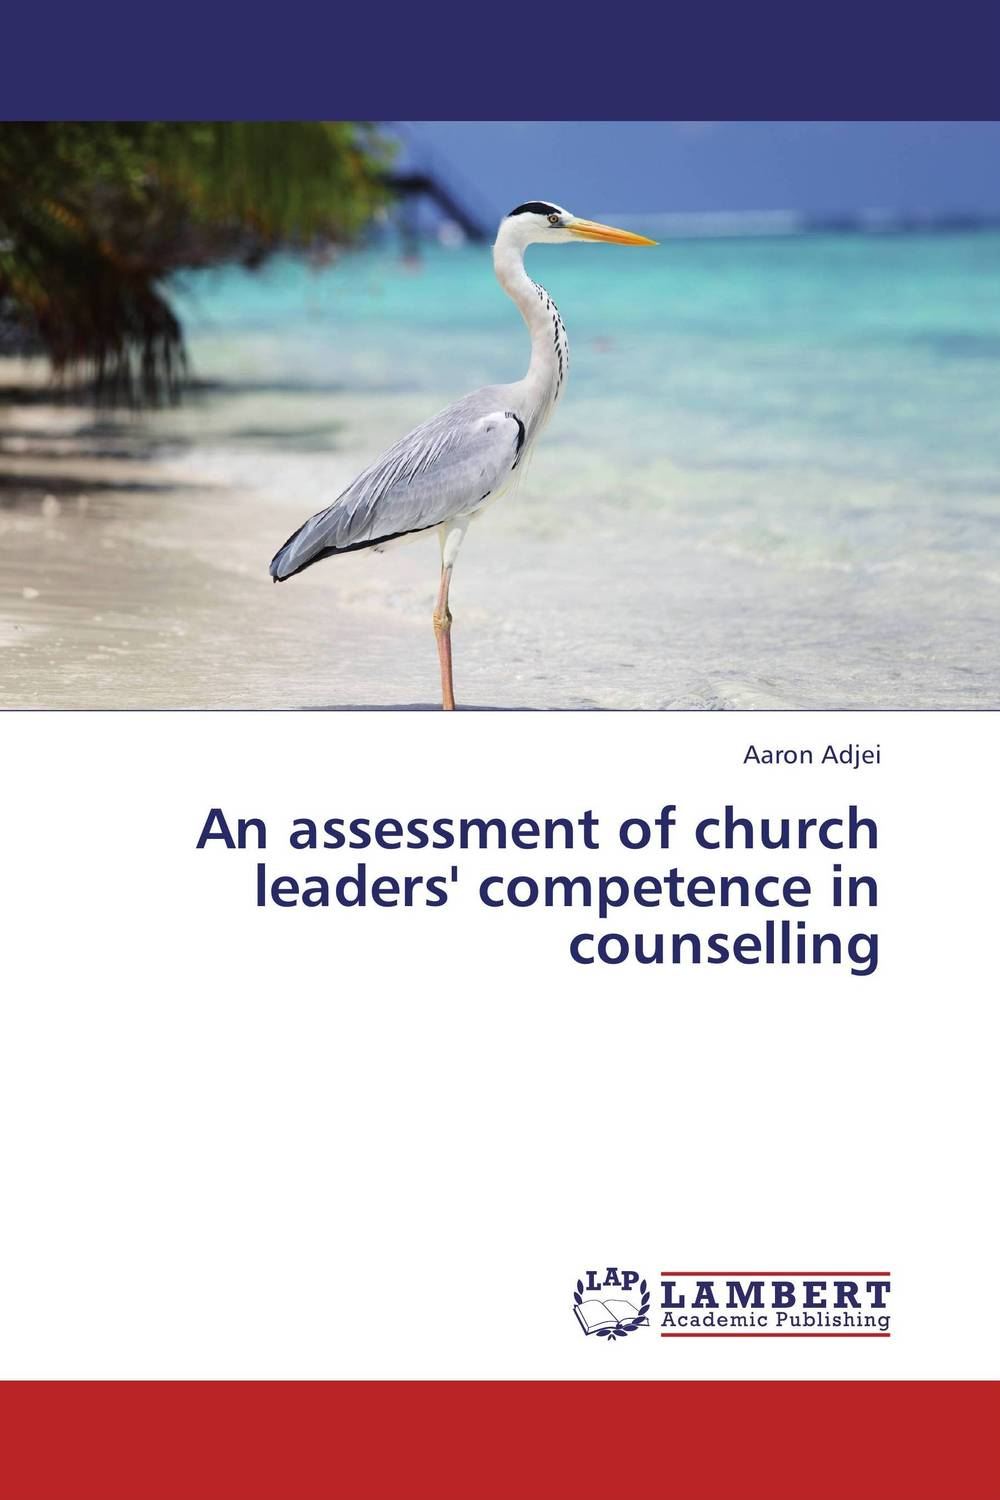 An assessment of church leaders' competence in counselling the salmon who dared to leap higher